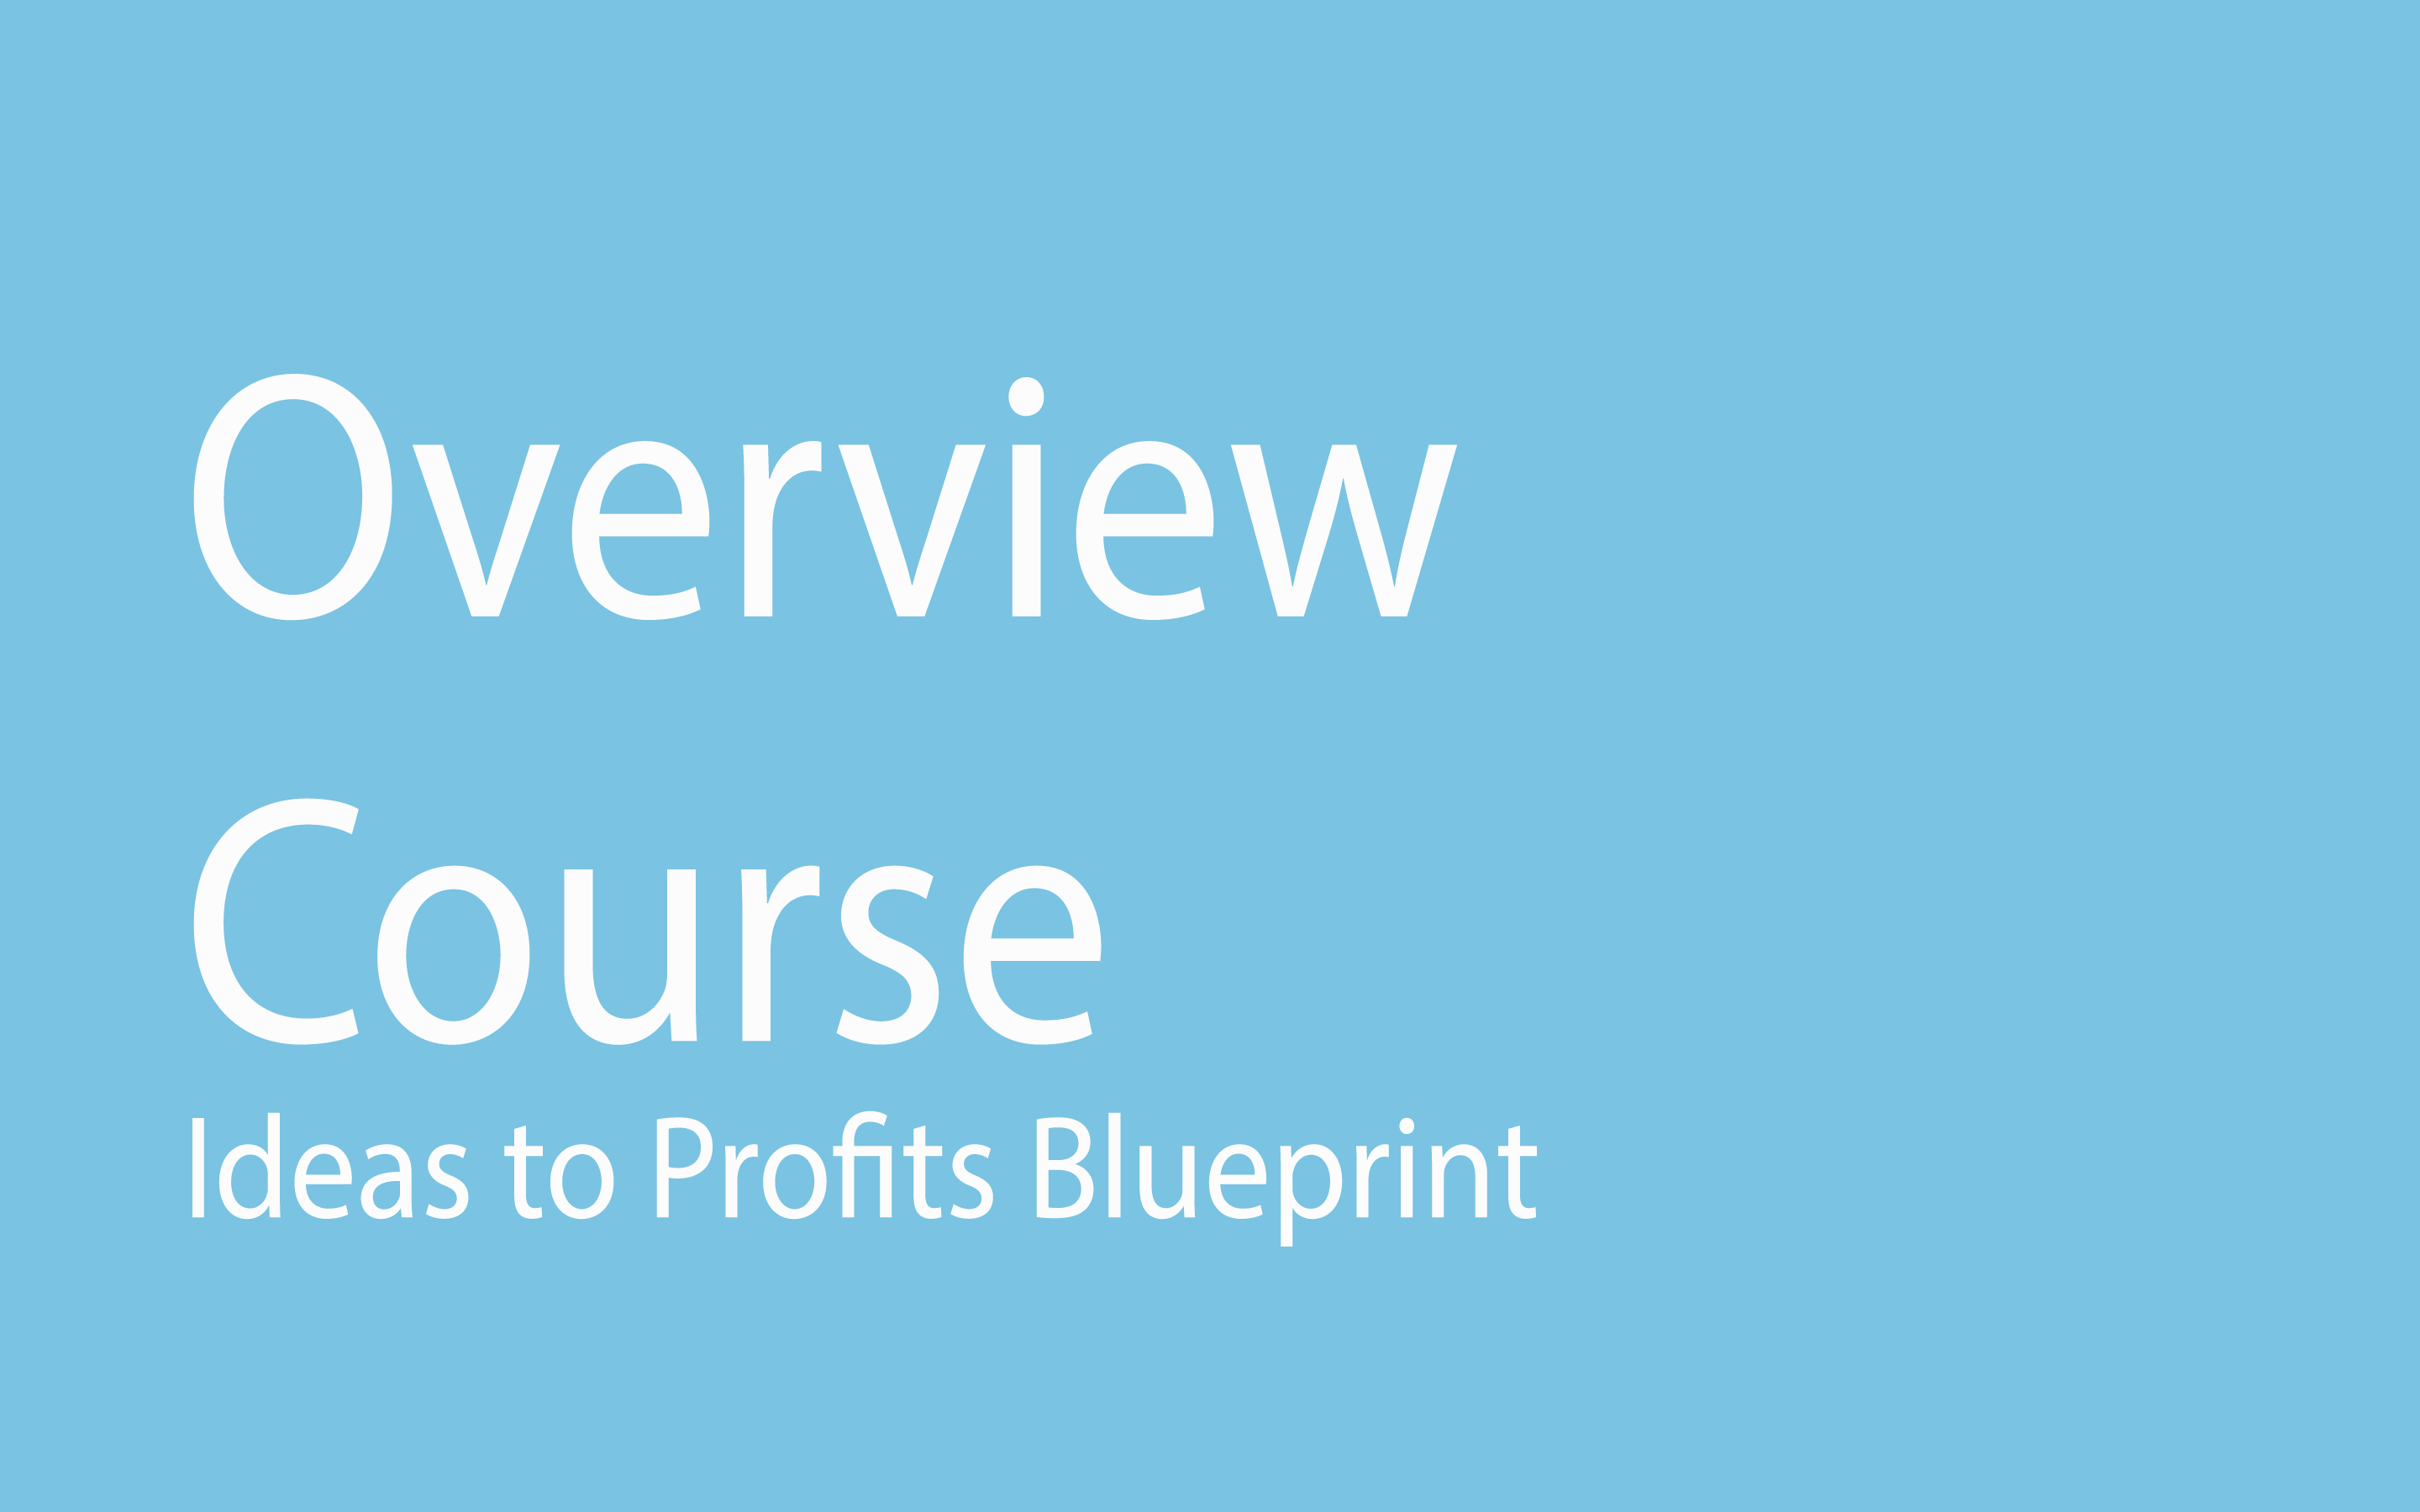 Overview Course